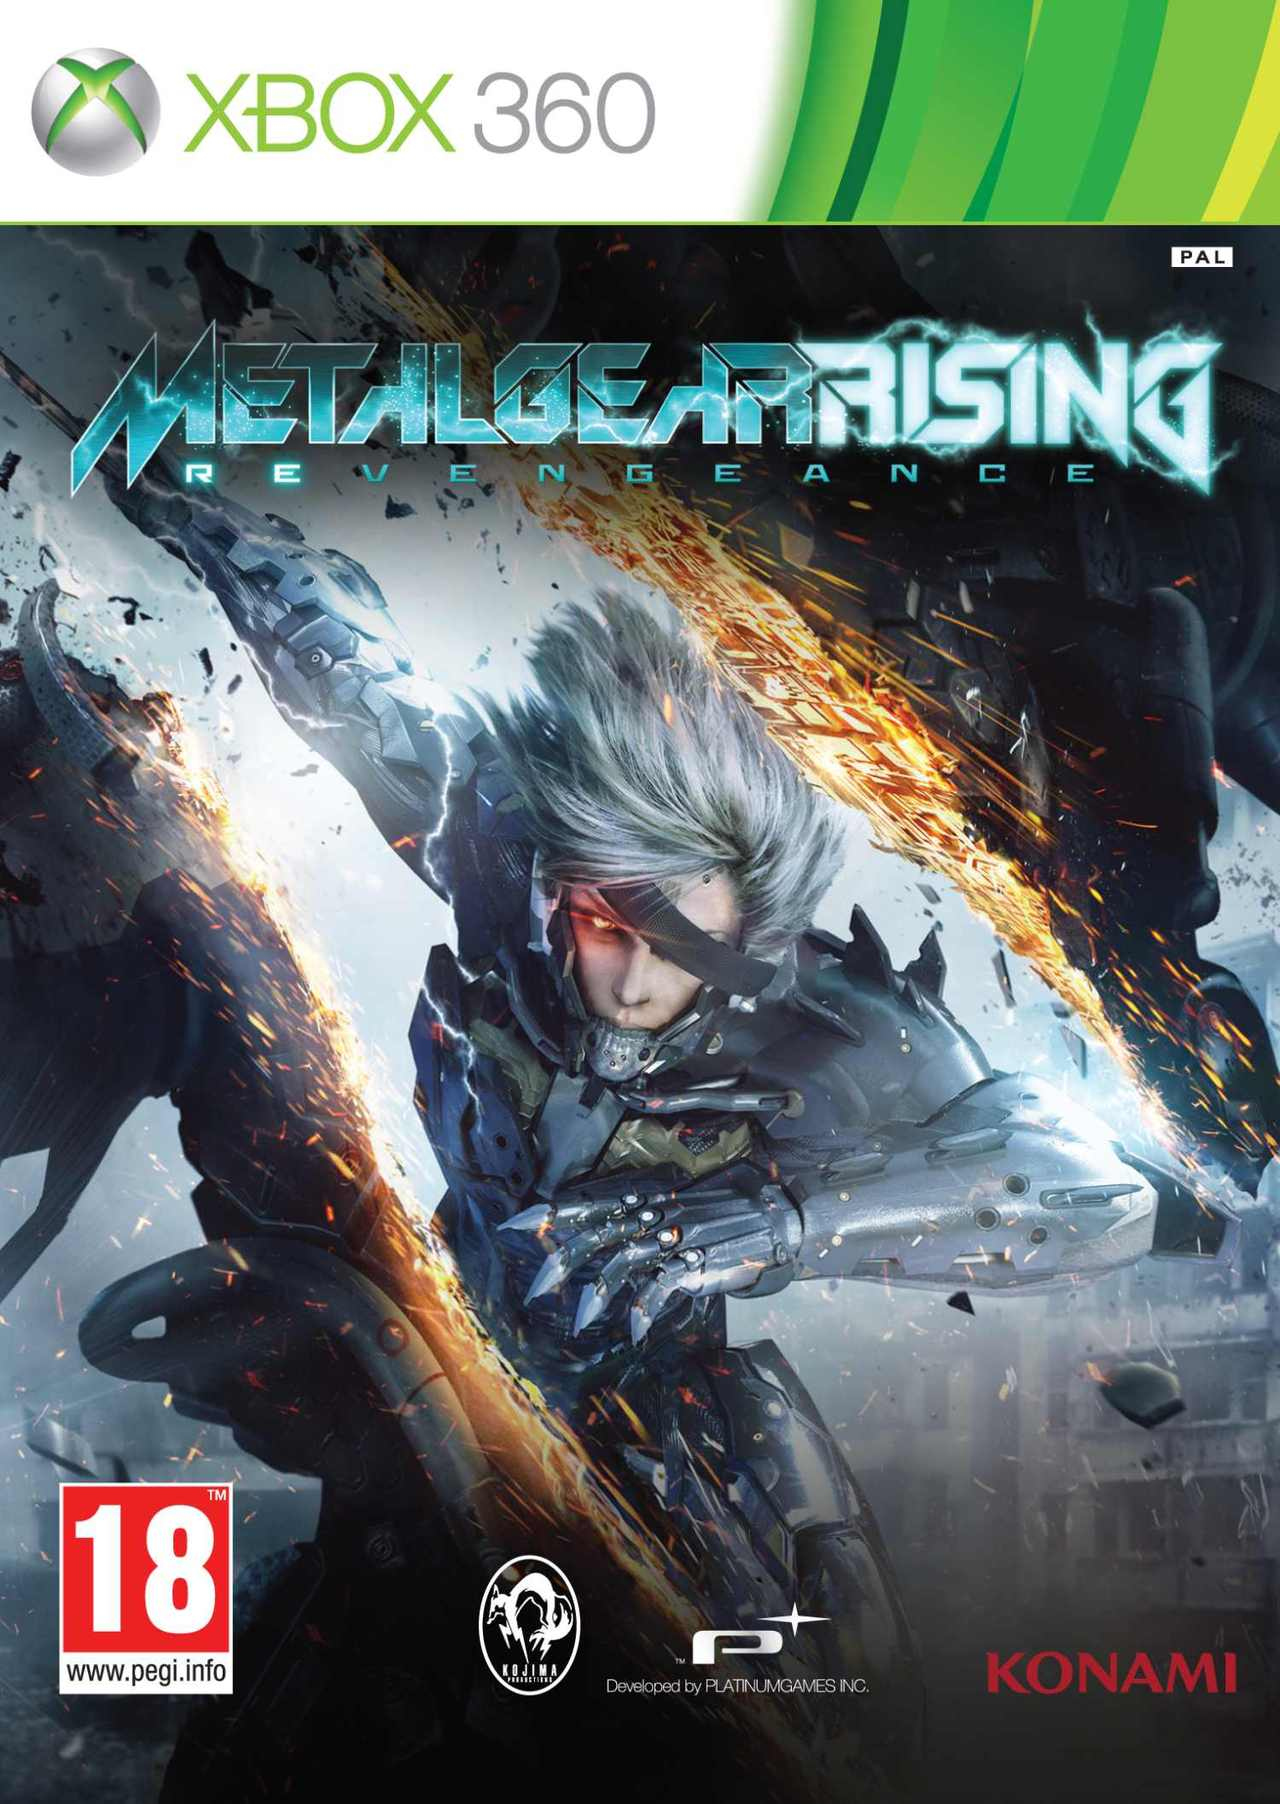 Les prochaines sorties - Page 22 Metal_Gear_Rising_-_Revengeance_XBOX_360